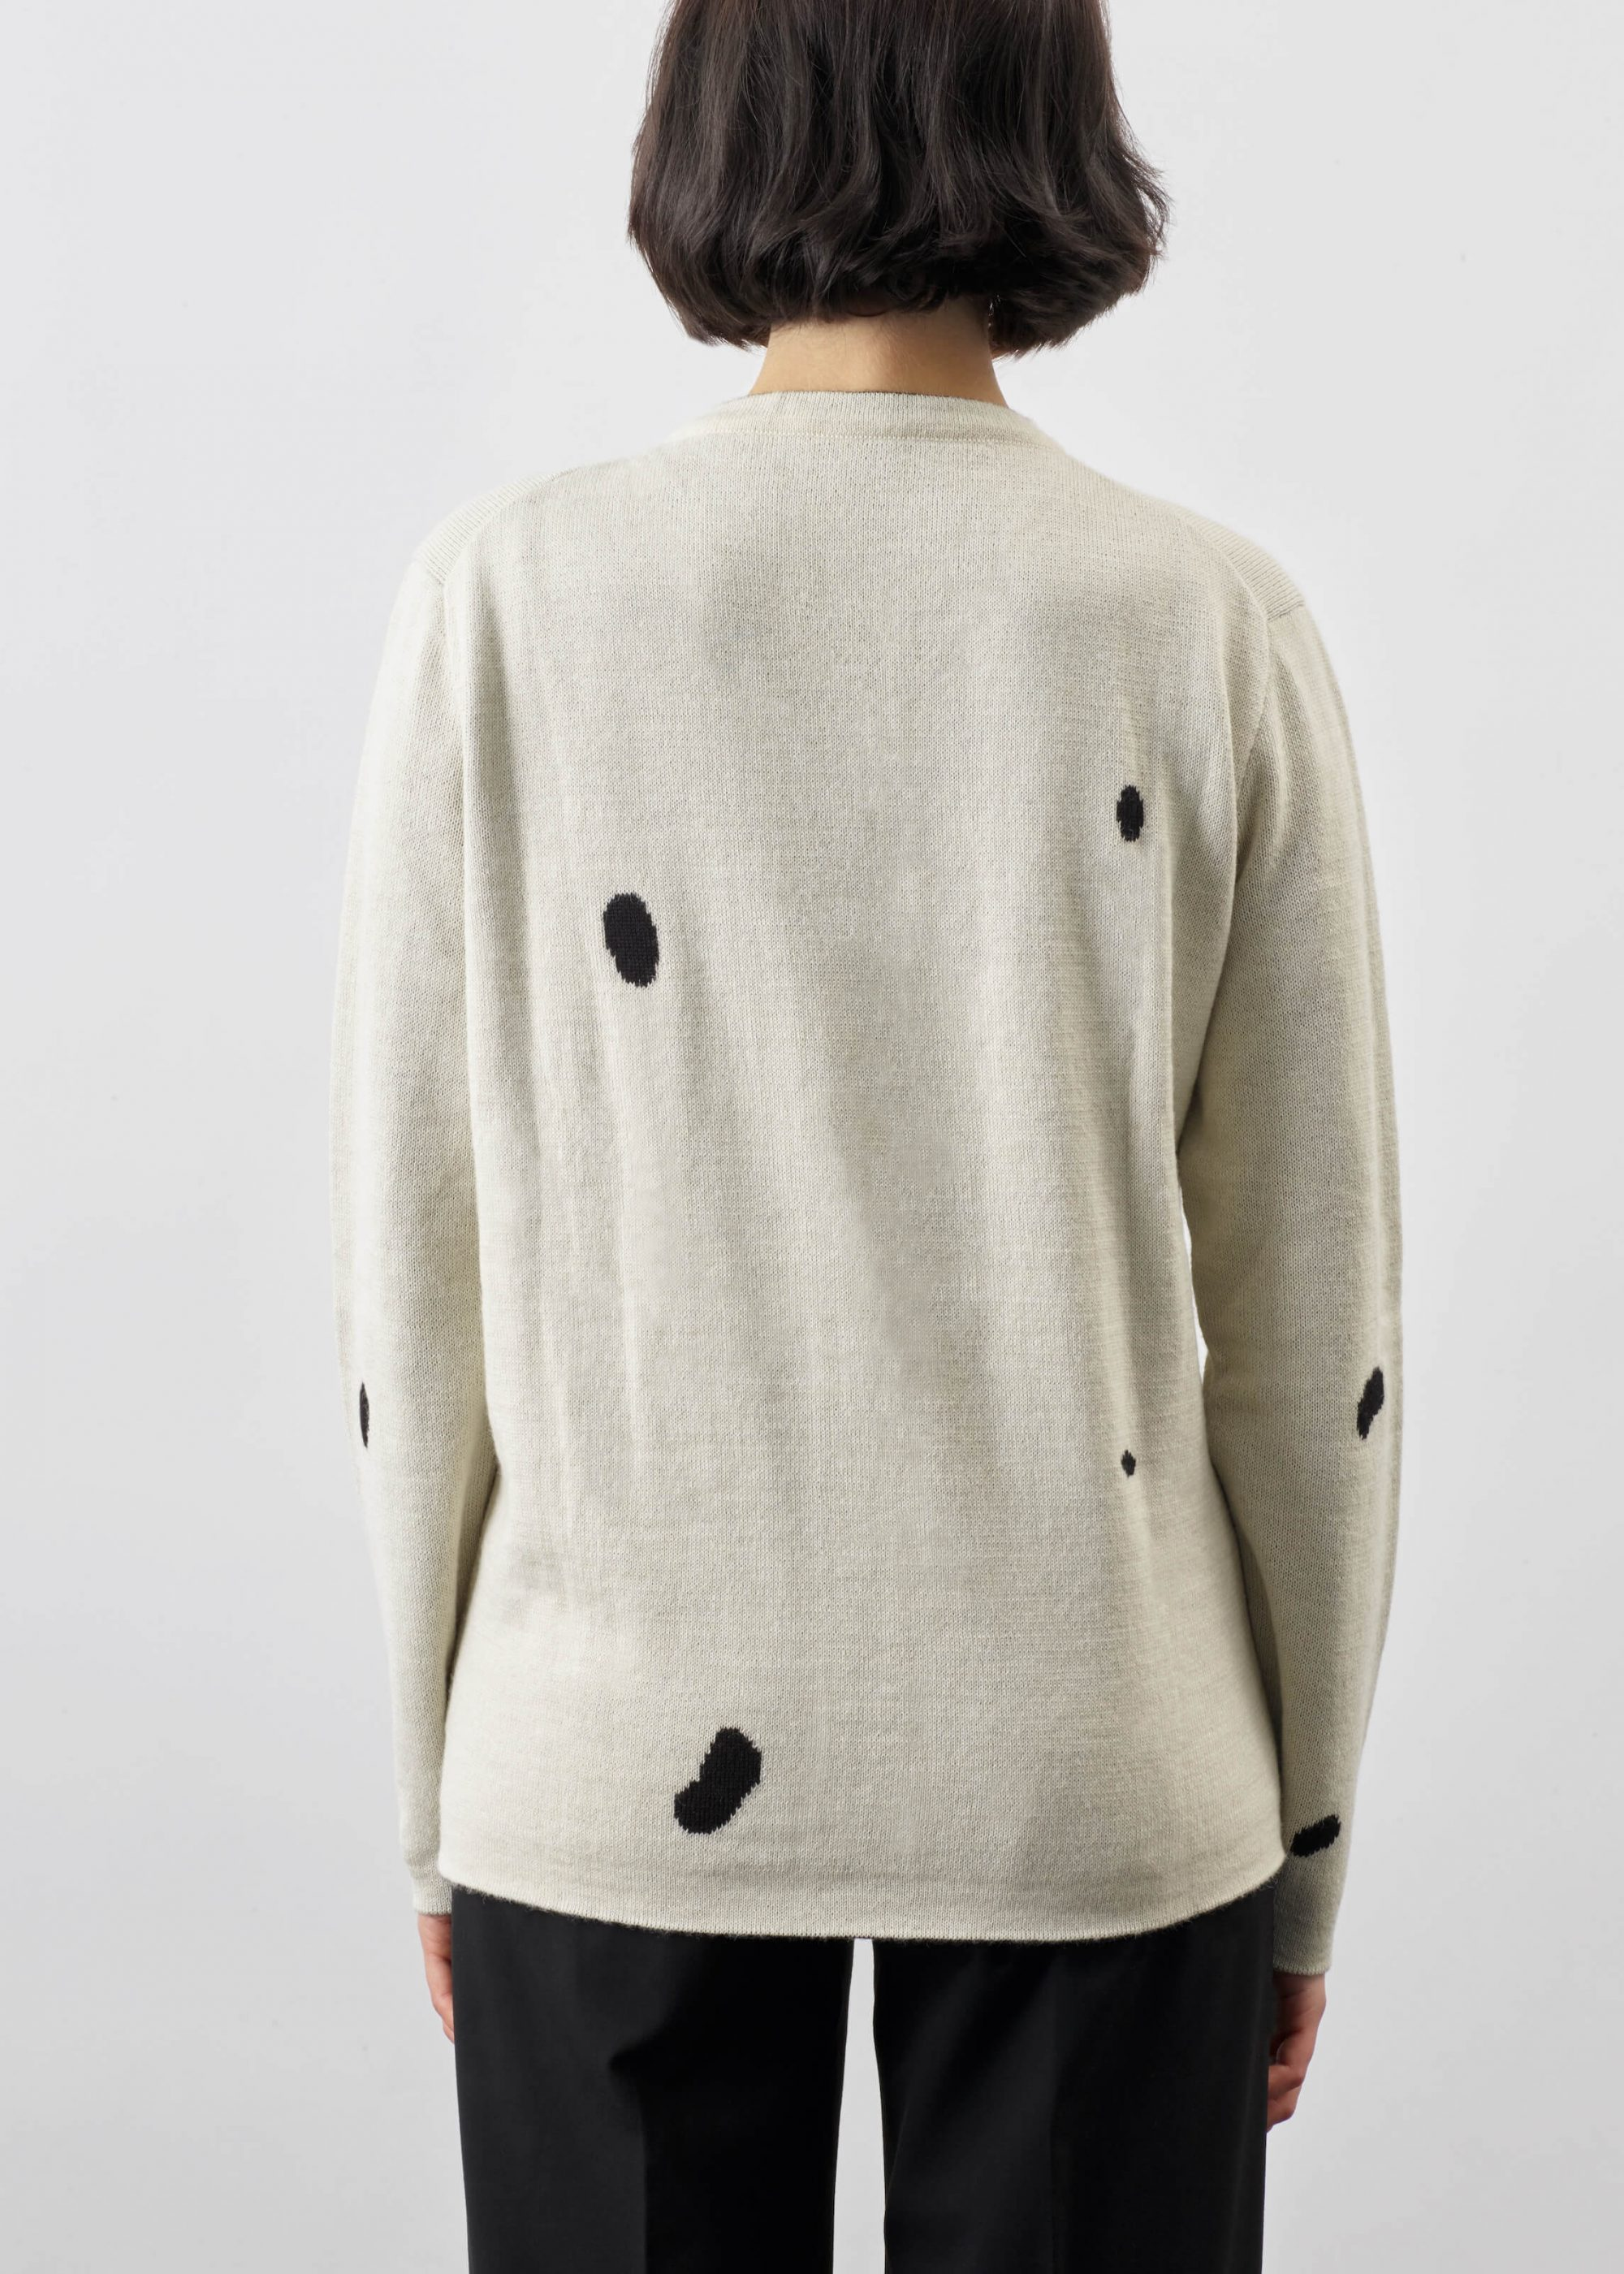 Product image for N° CKE1 Ermine